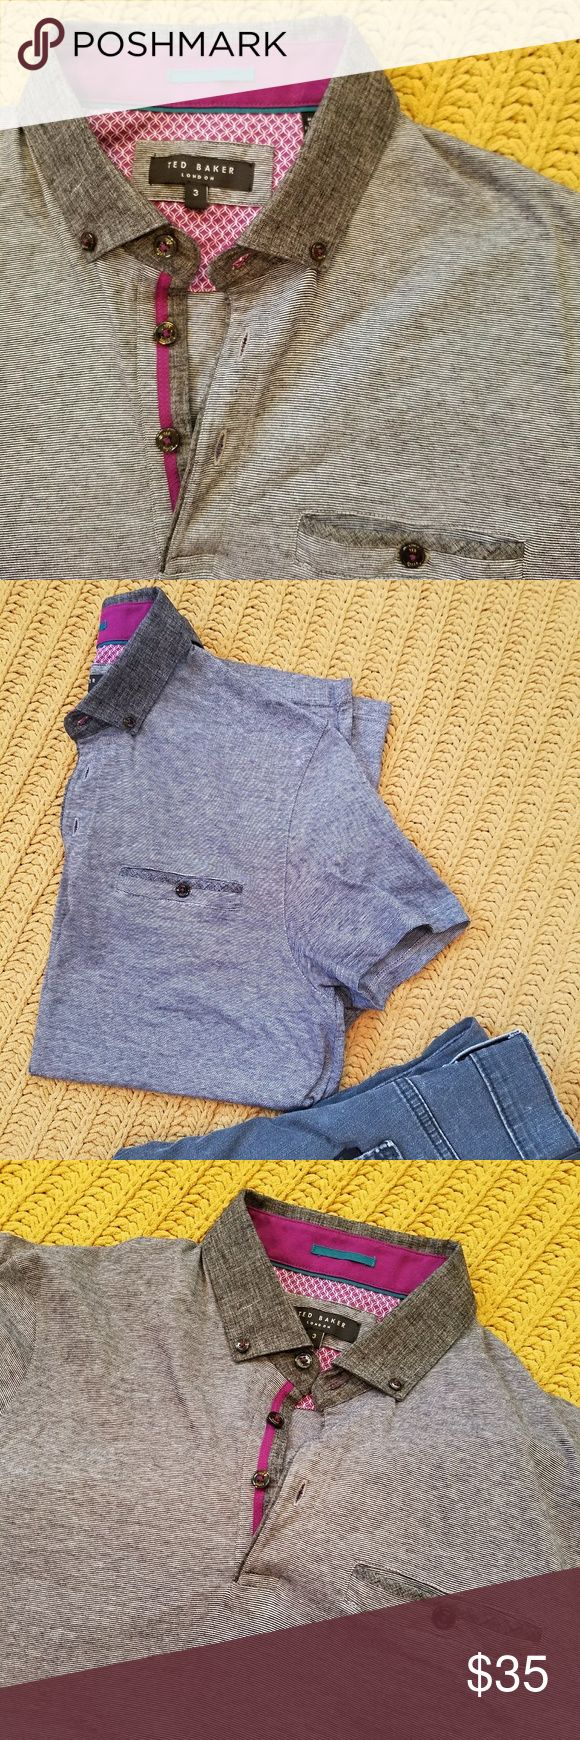 NWOT Ted Baker polo shirt NWOT Great gray stripped polo shirt by Ted Baker. Ted Size 3 (size medium)  PERFECT CONDITION Shirts Polos